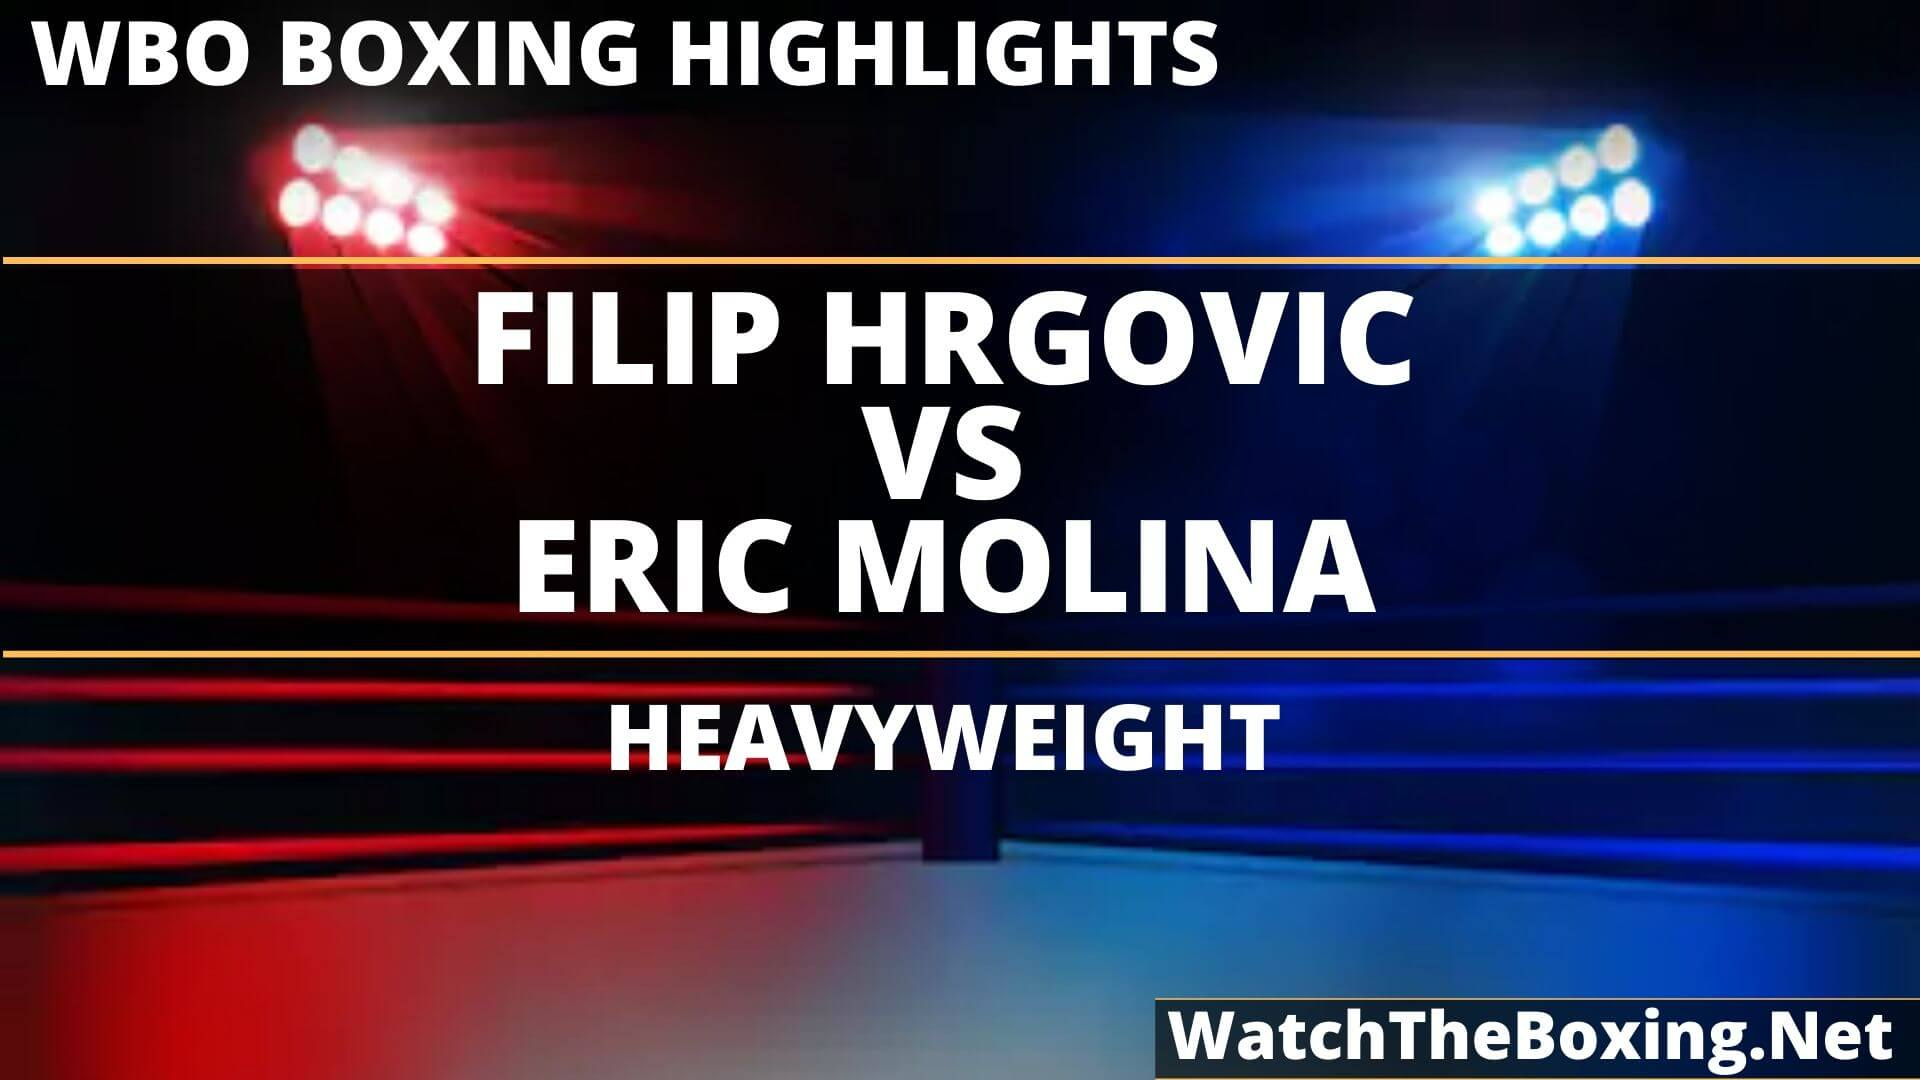 Filip Hrgovic Vs Eric Molina Highlights 2019